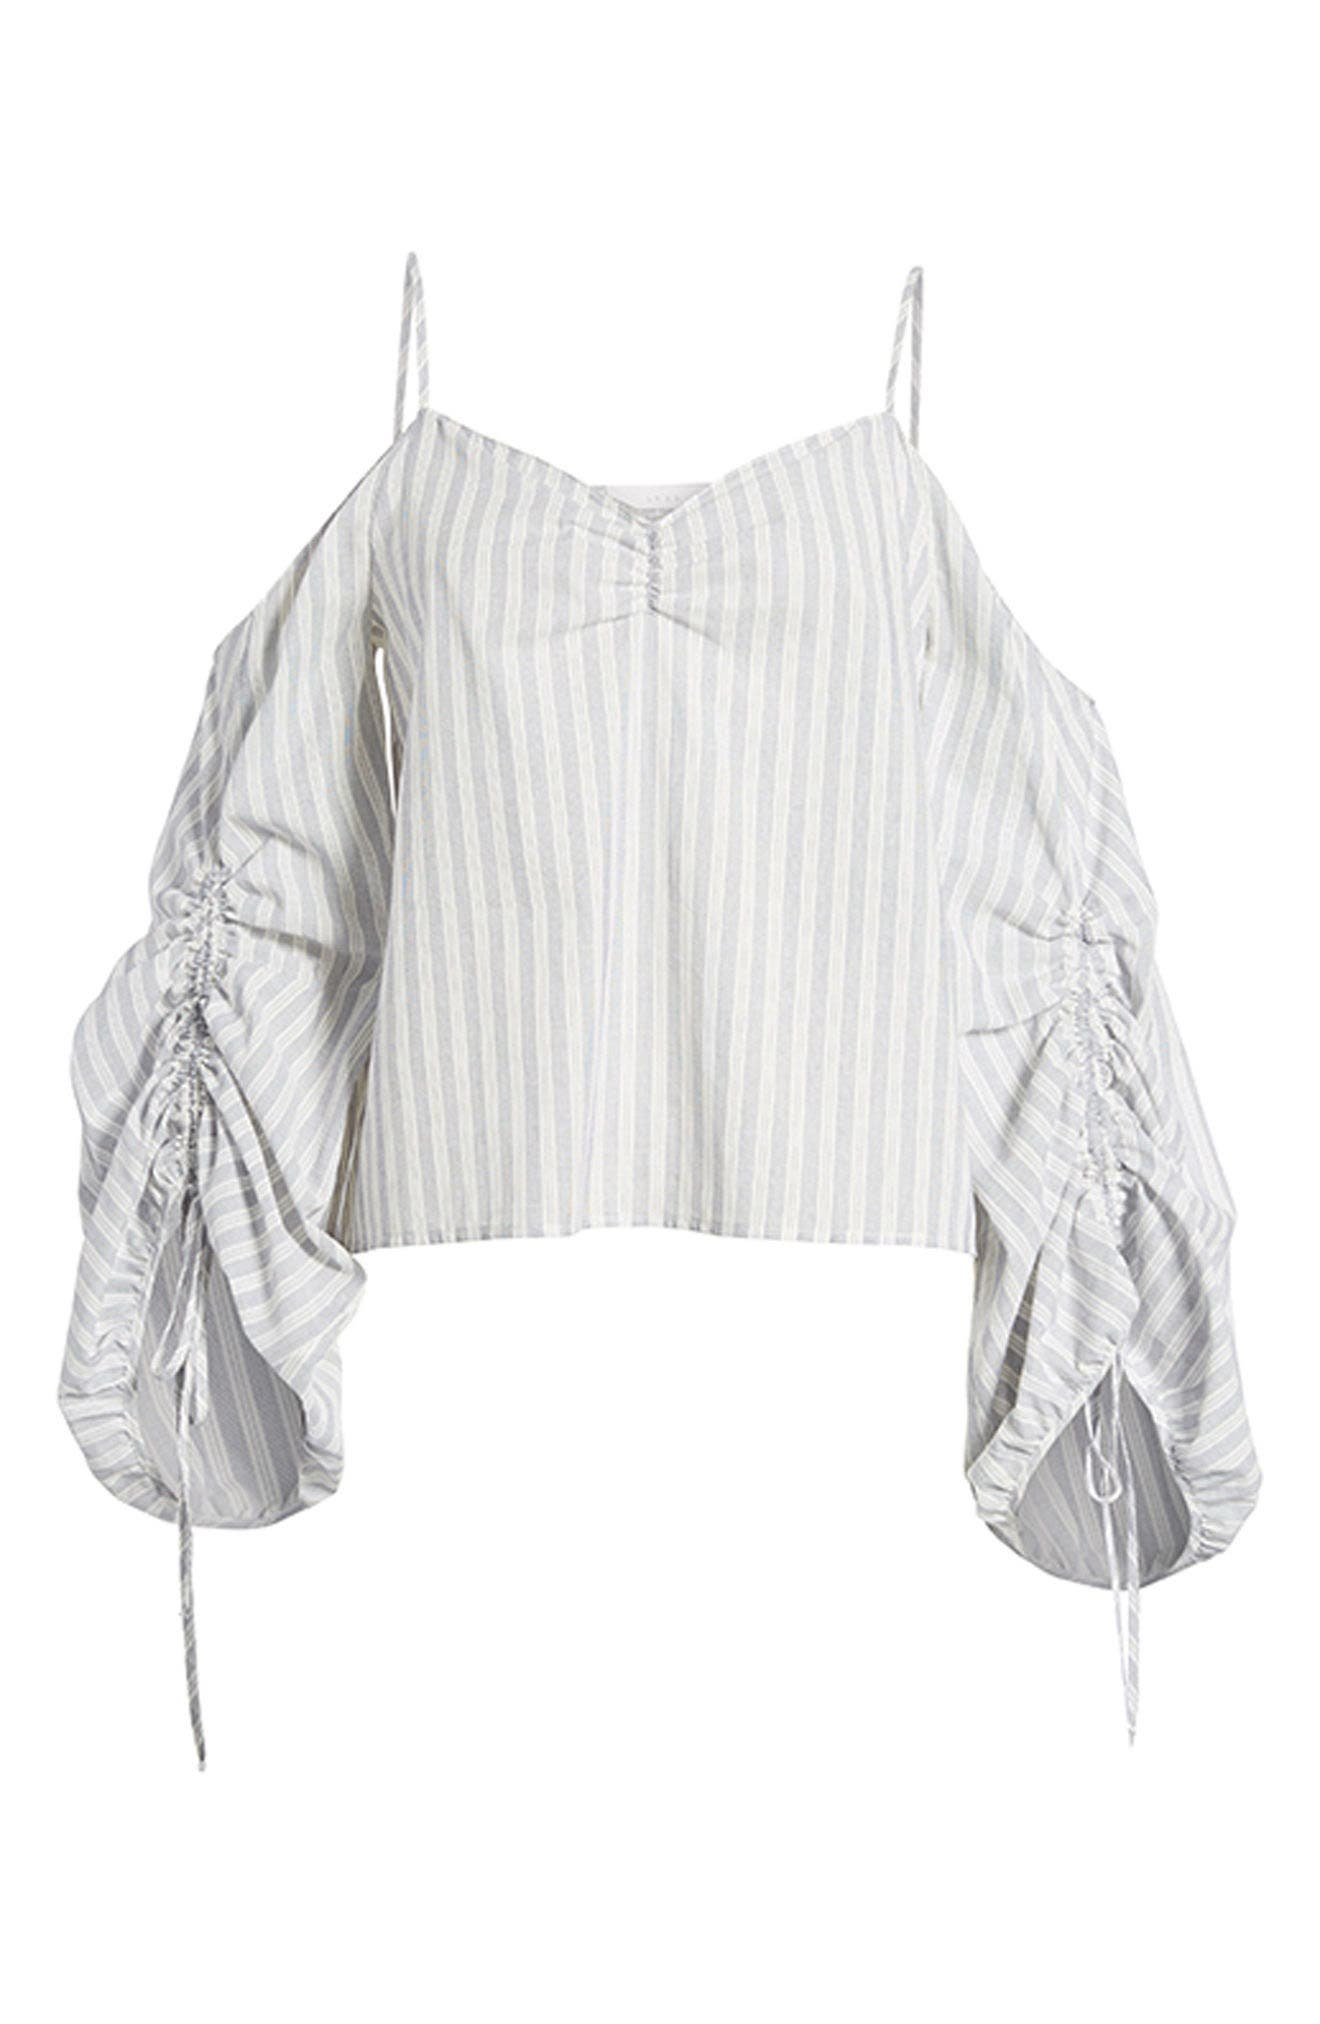 Cinched Balloon Sleeve Top,                             Alternate thumbnail 7, color,                             020